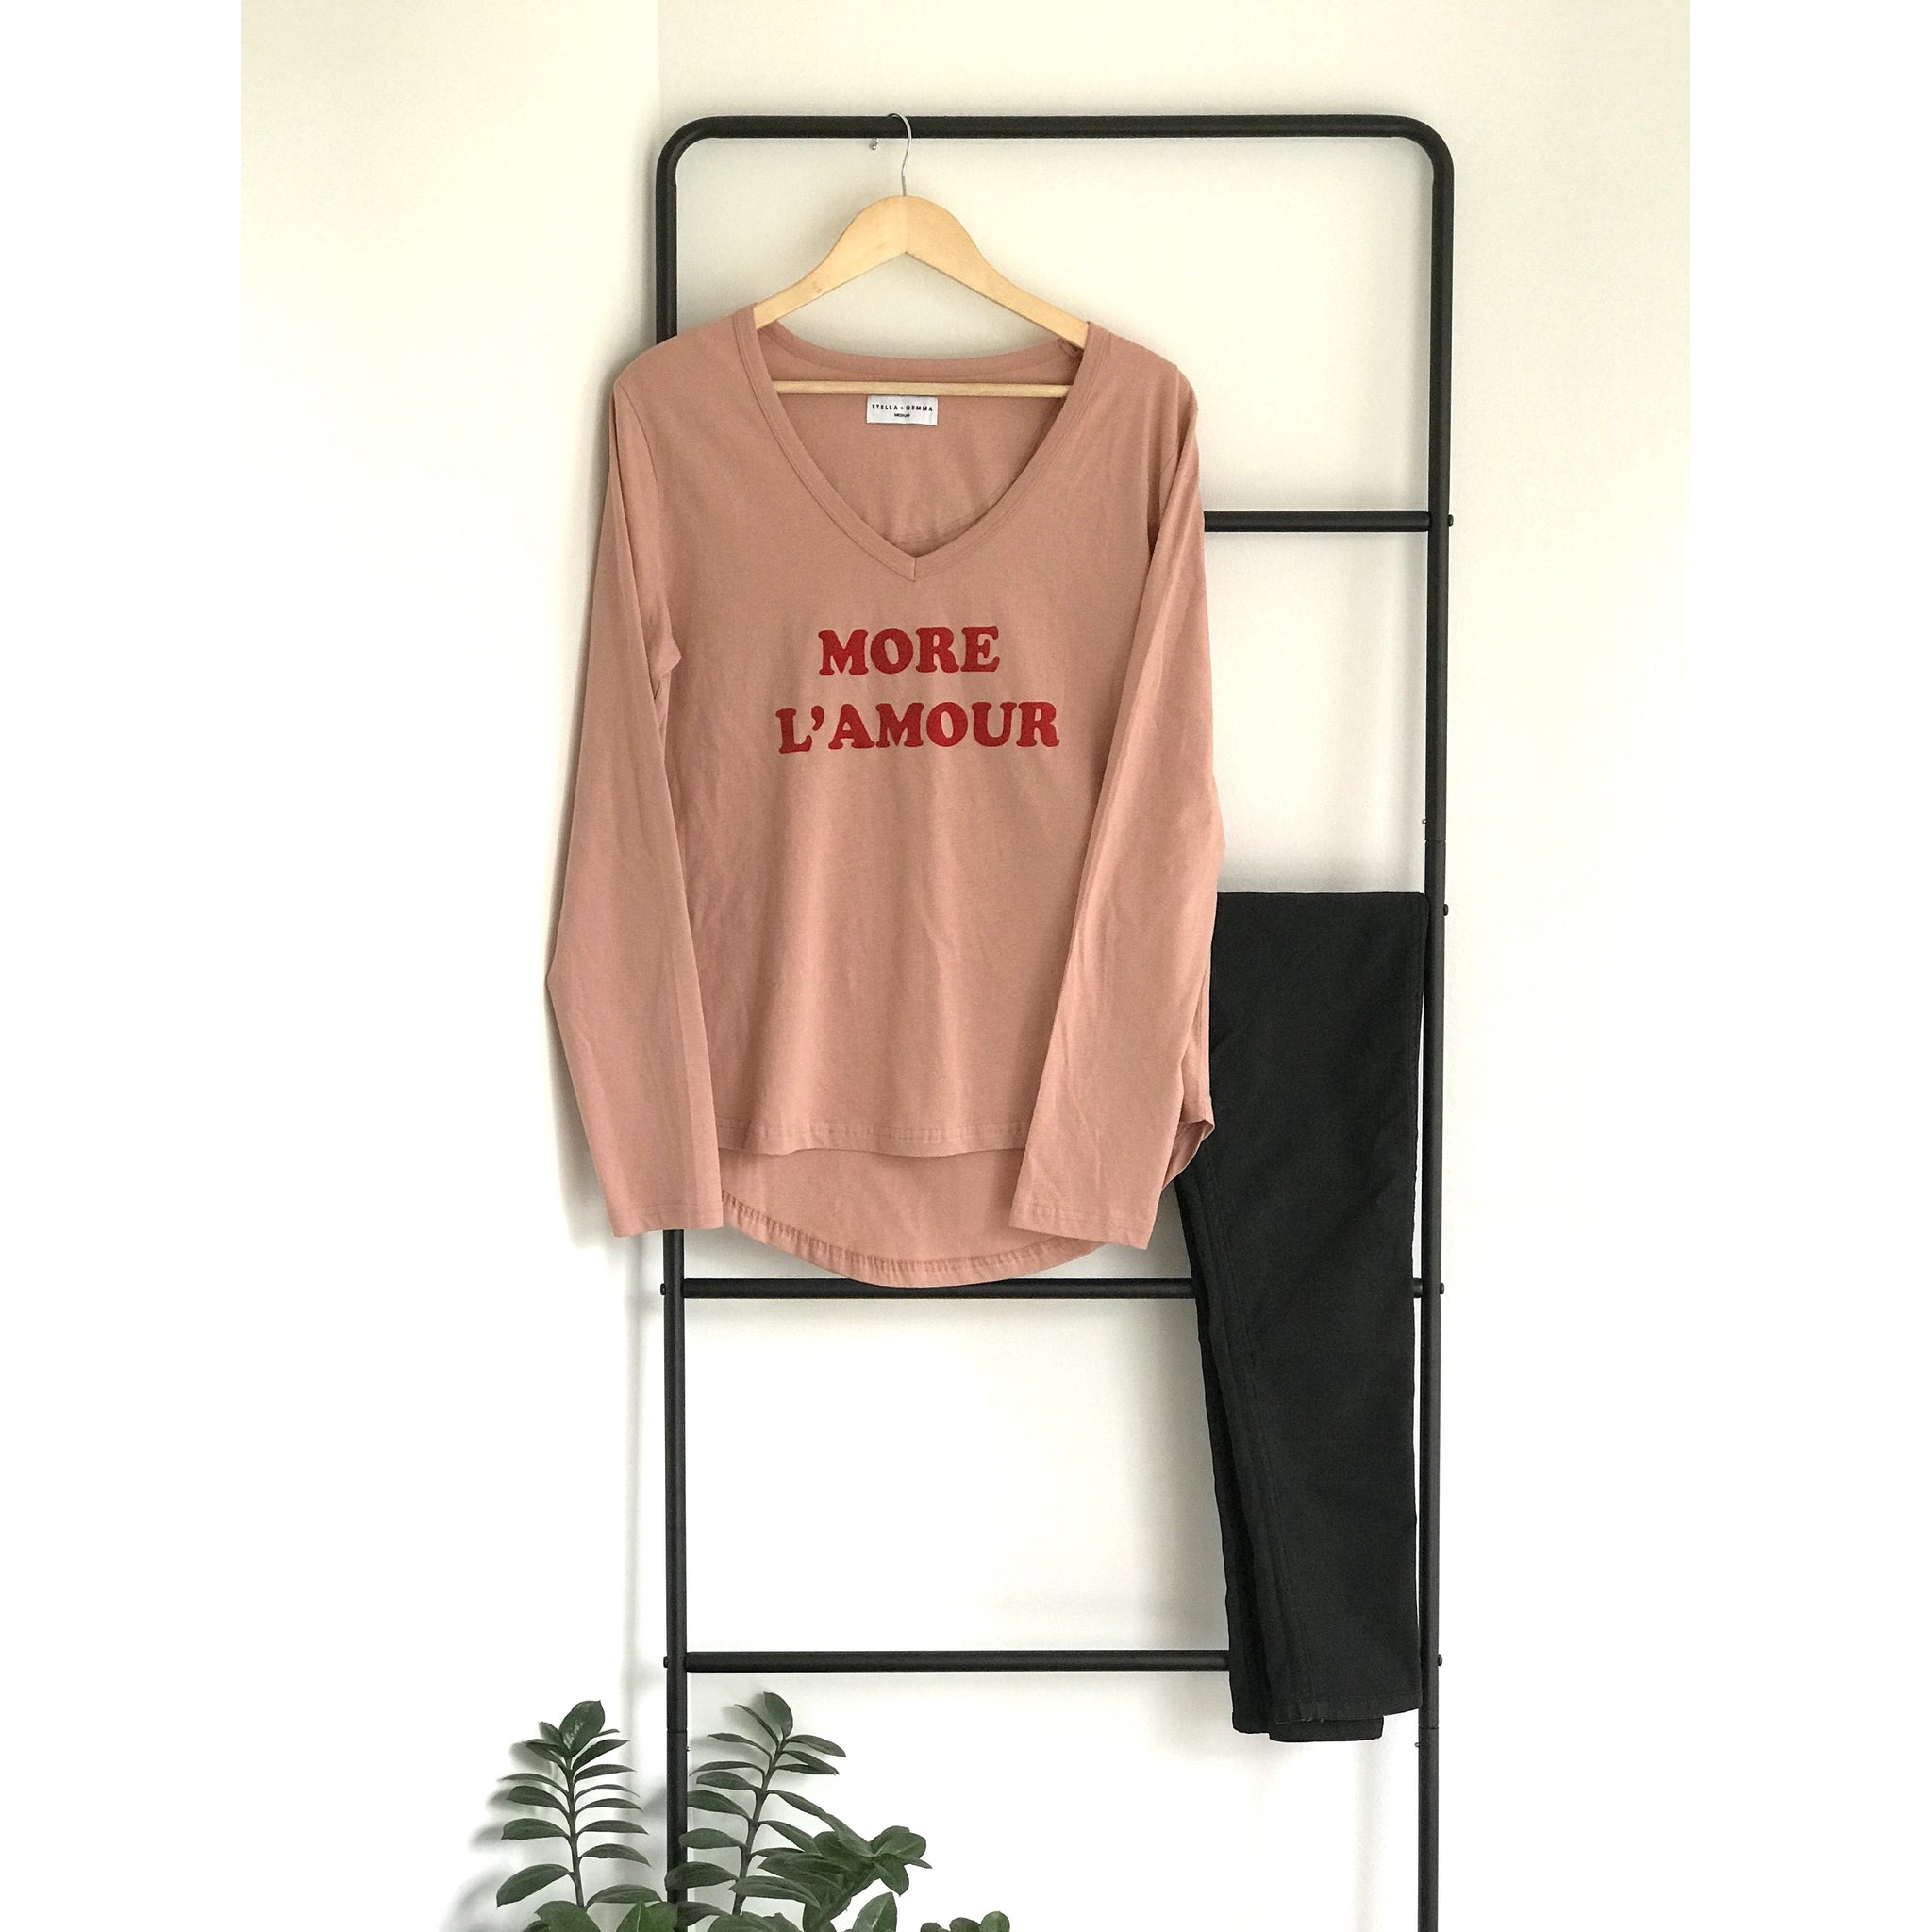 More L' Amour Long sleeved tee